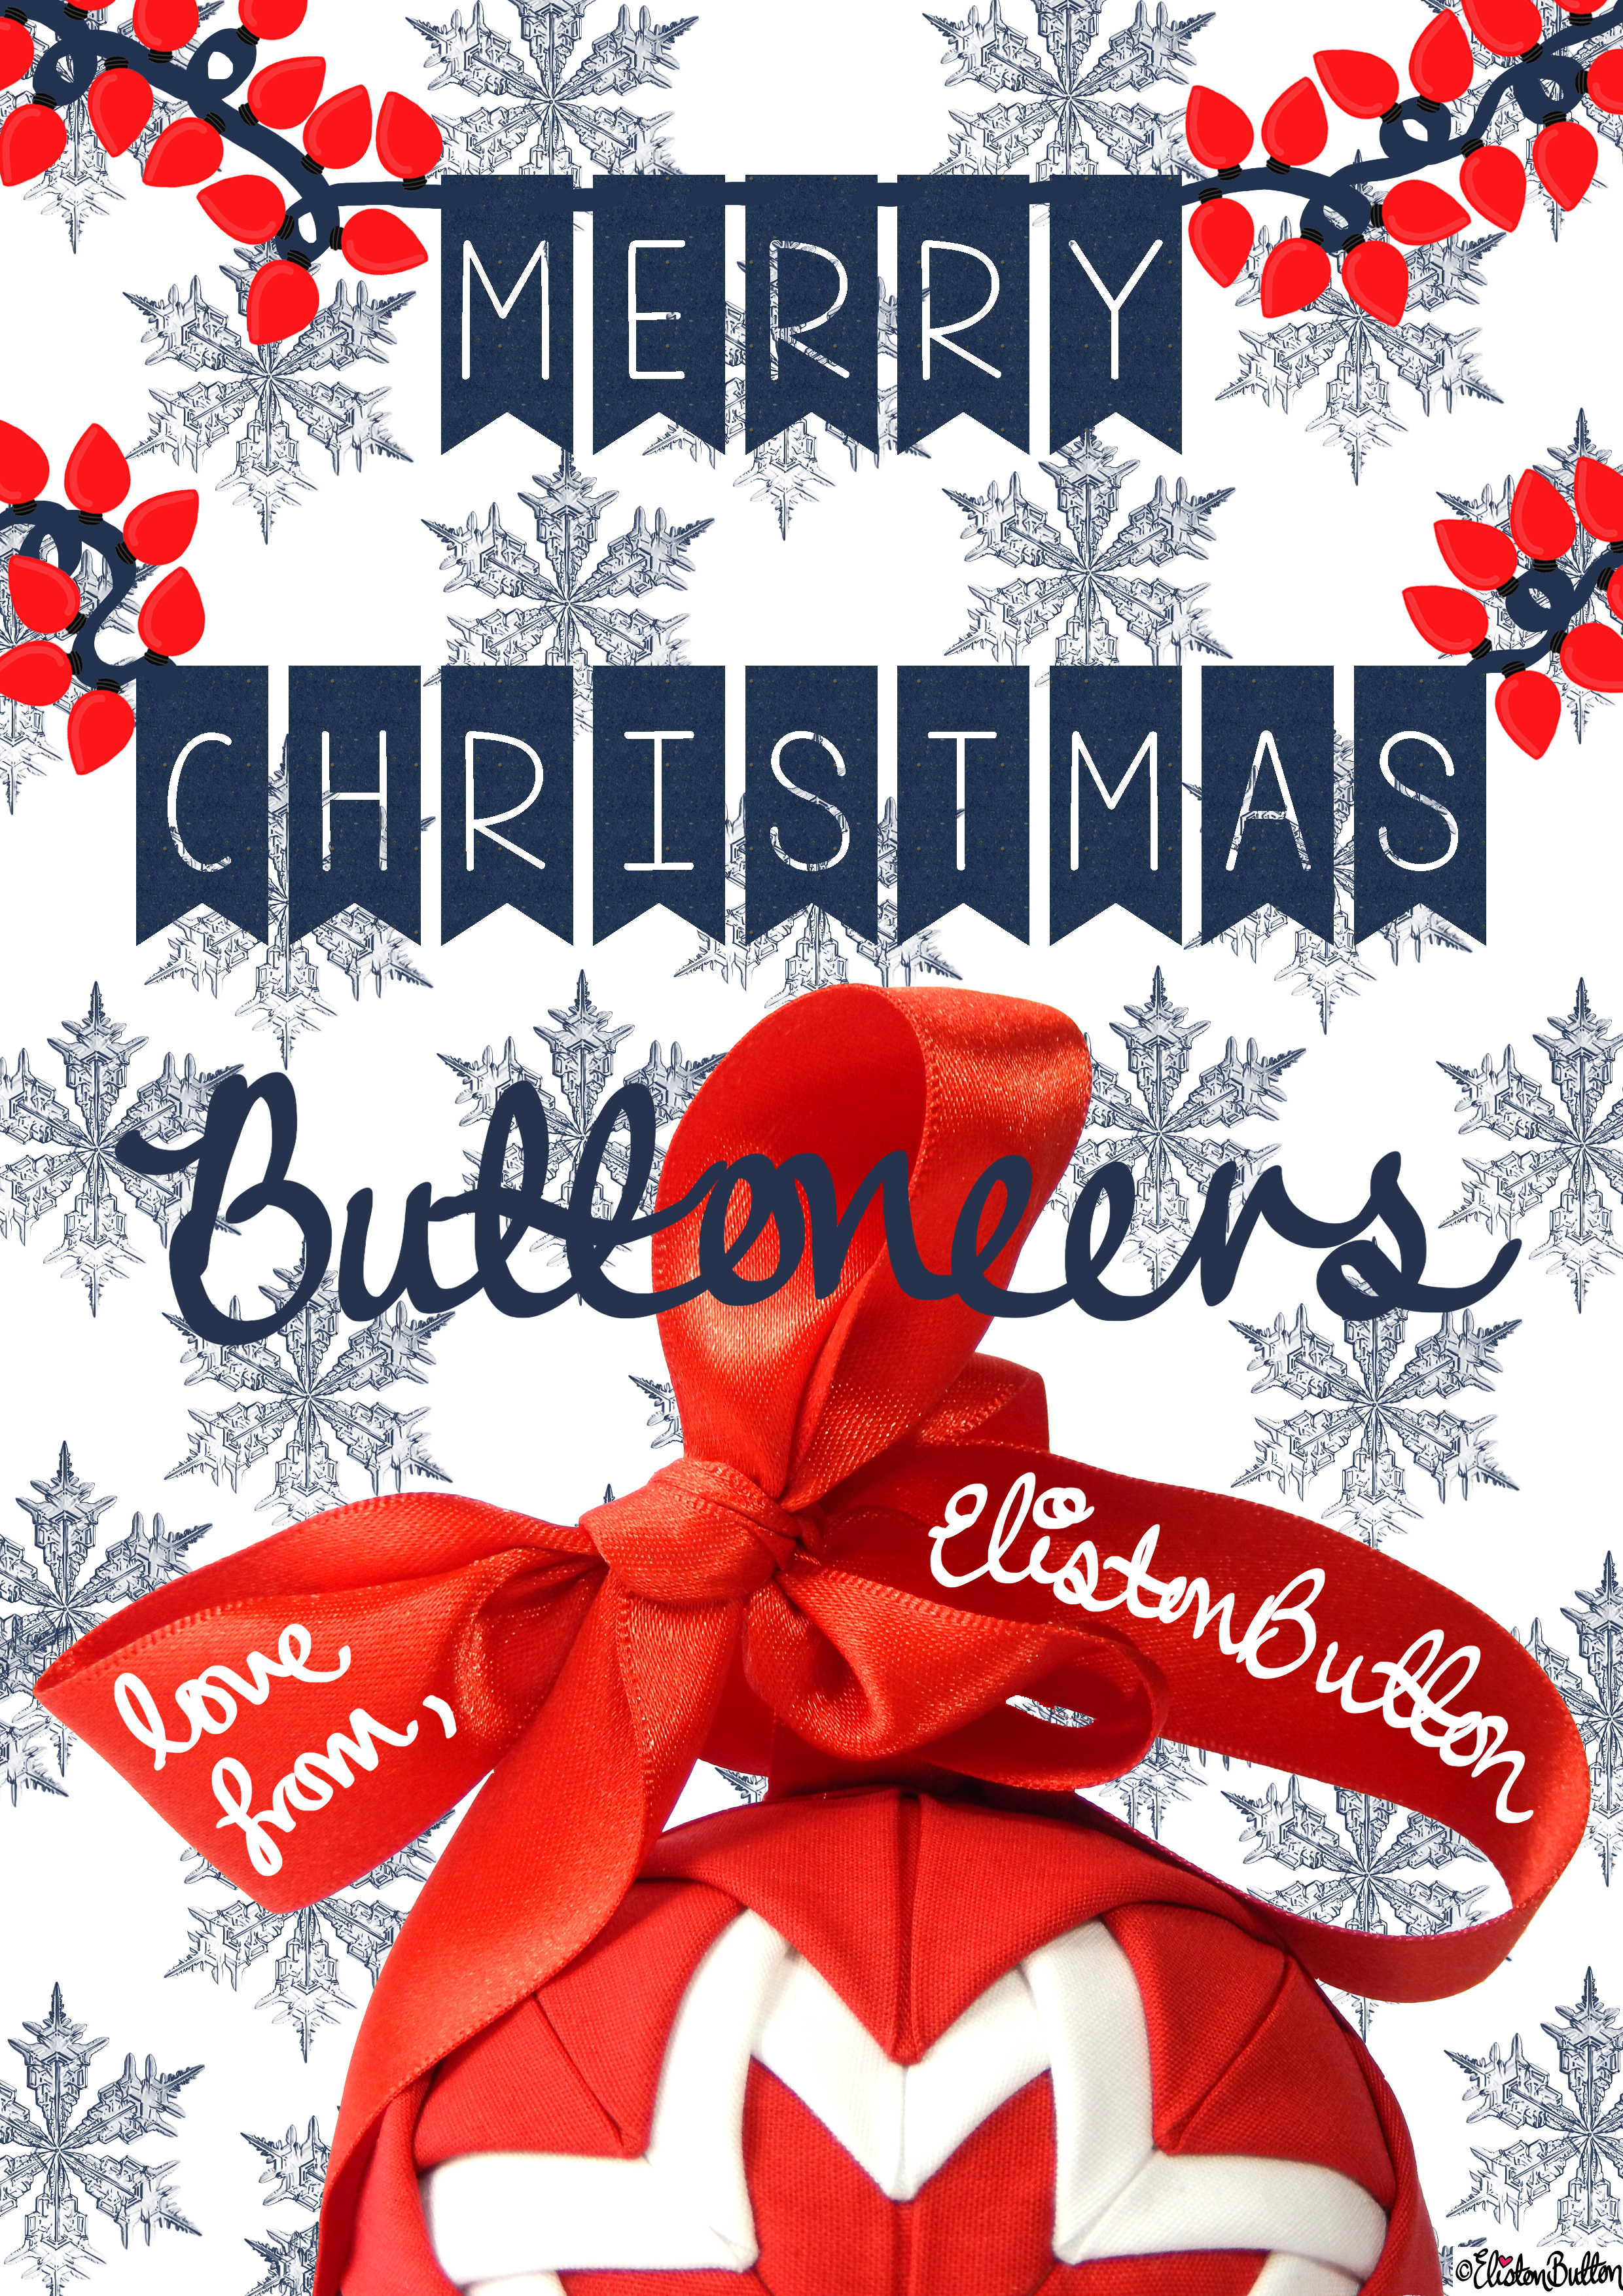 Merry Christmas Buttoneers - Love From Eliston Button - What a Year! (Merry Christmas & Happy Holidays!)